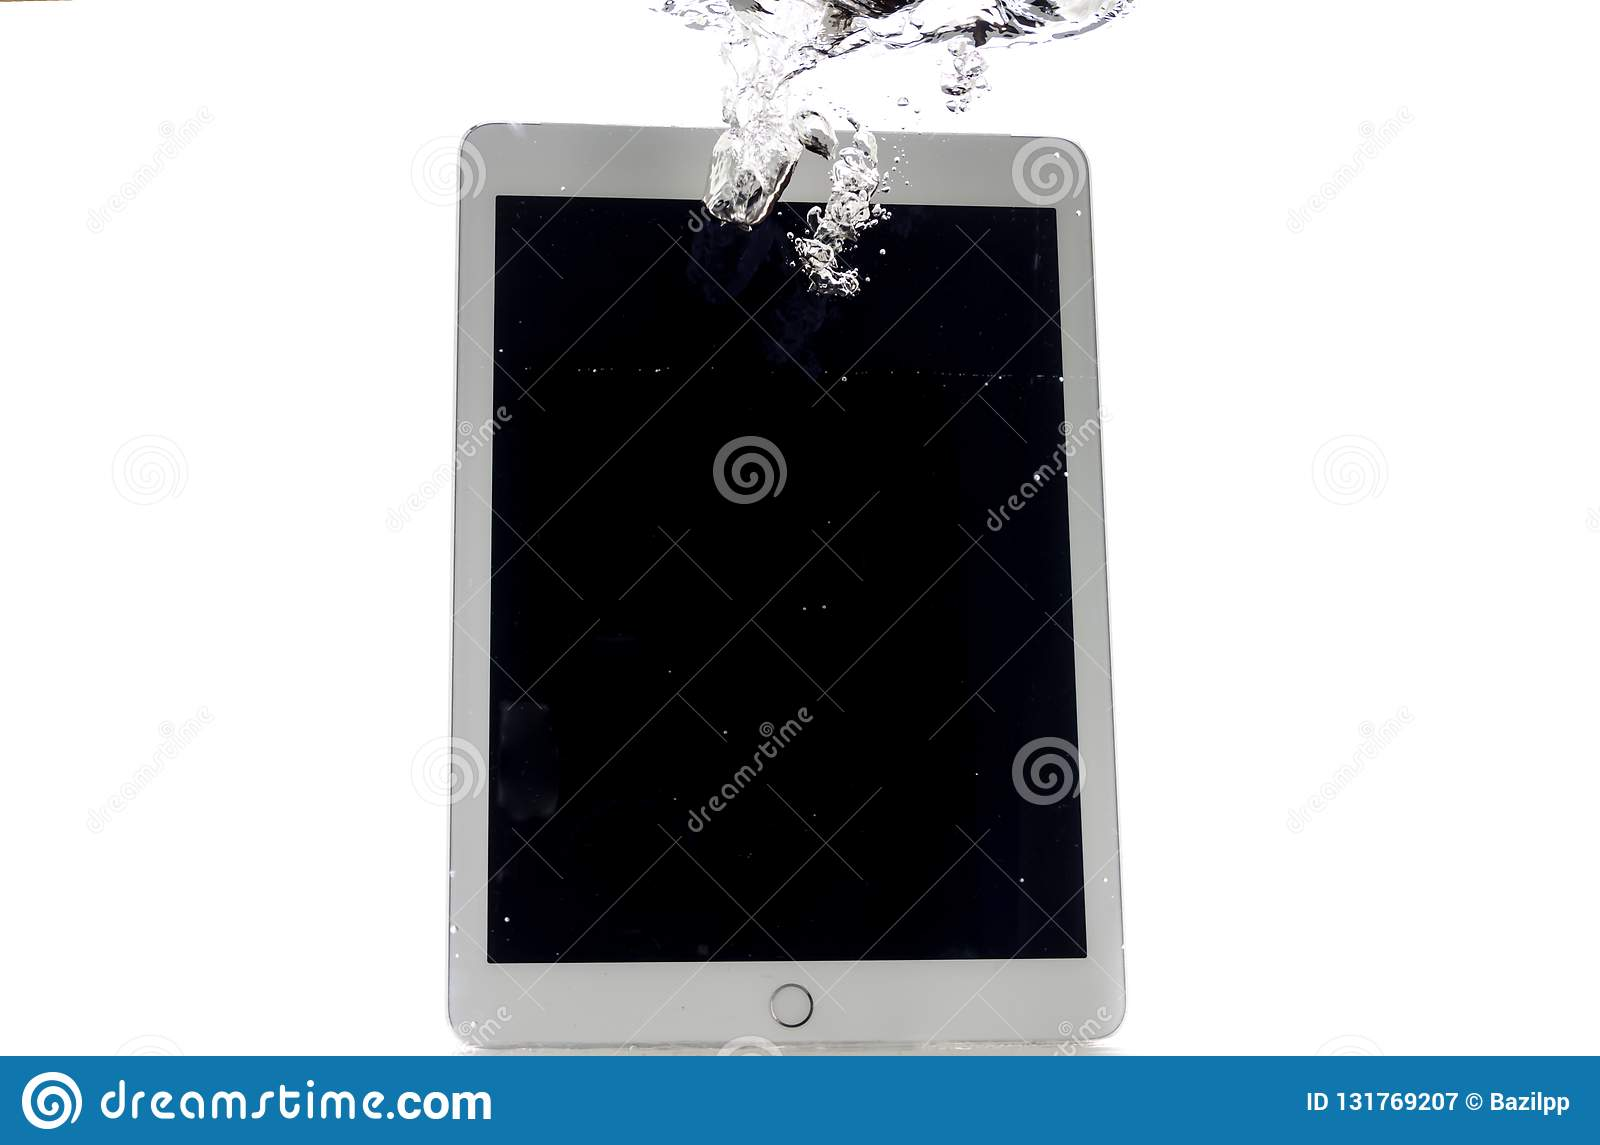 Modern large tablet under water, bad day, not photoshop